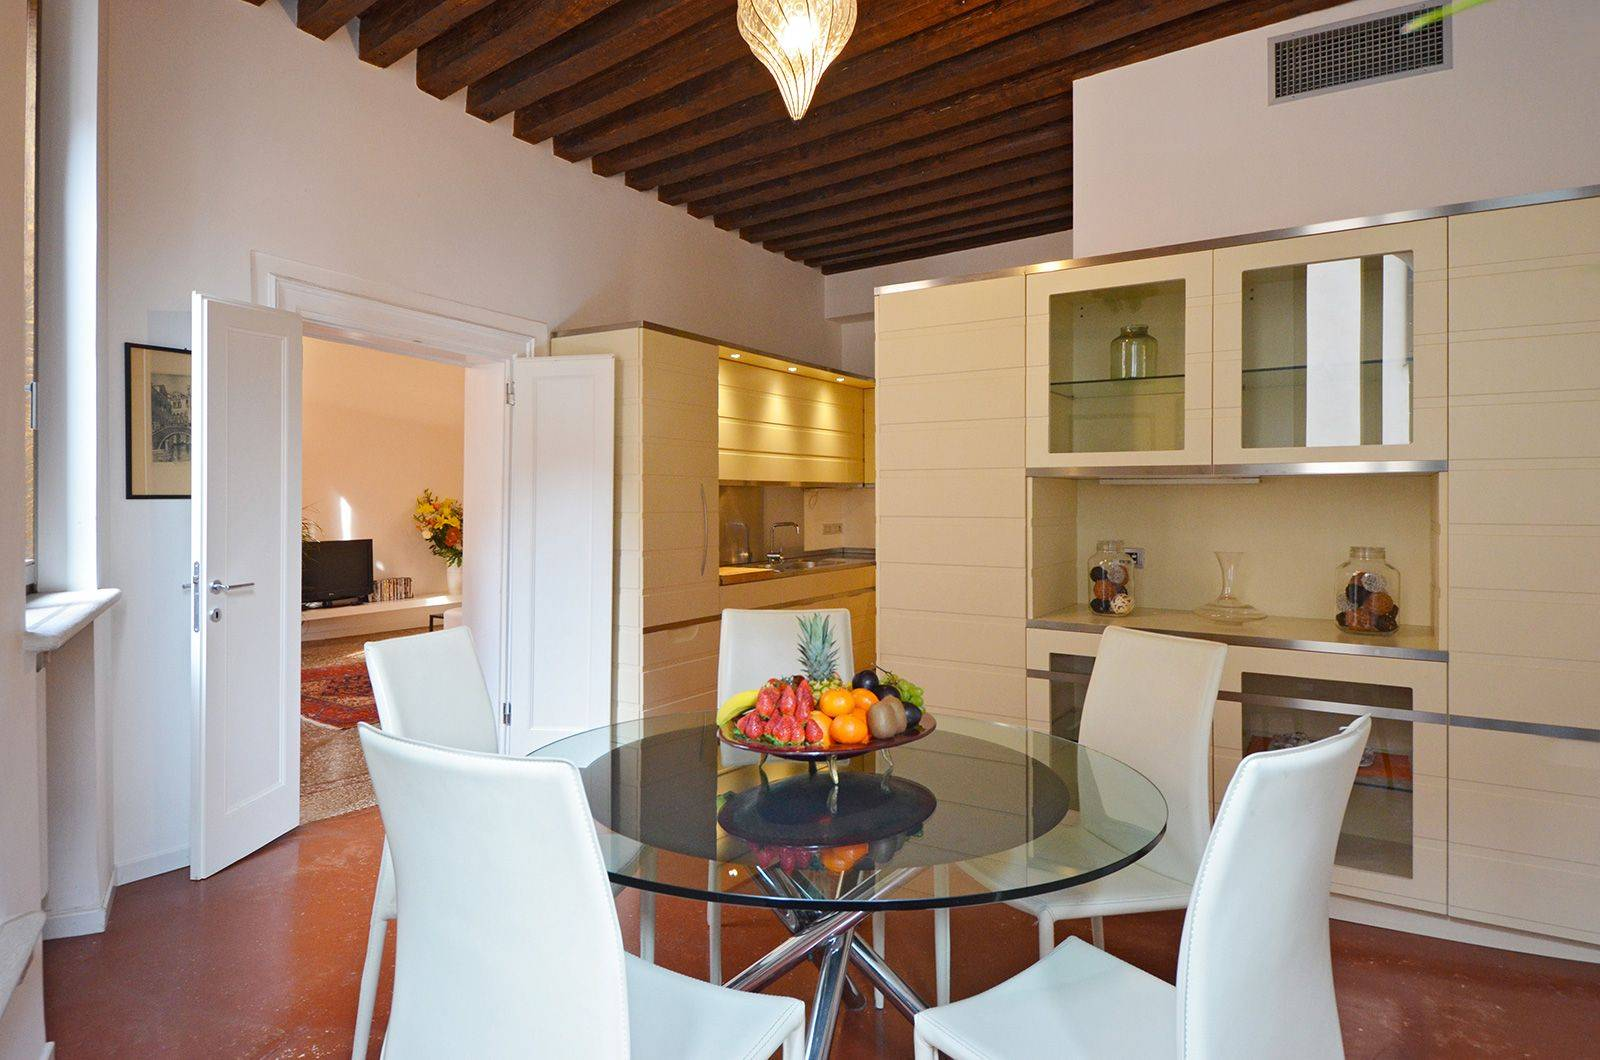 the apartment is bright and airy, with high ceilings and many windows